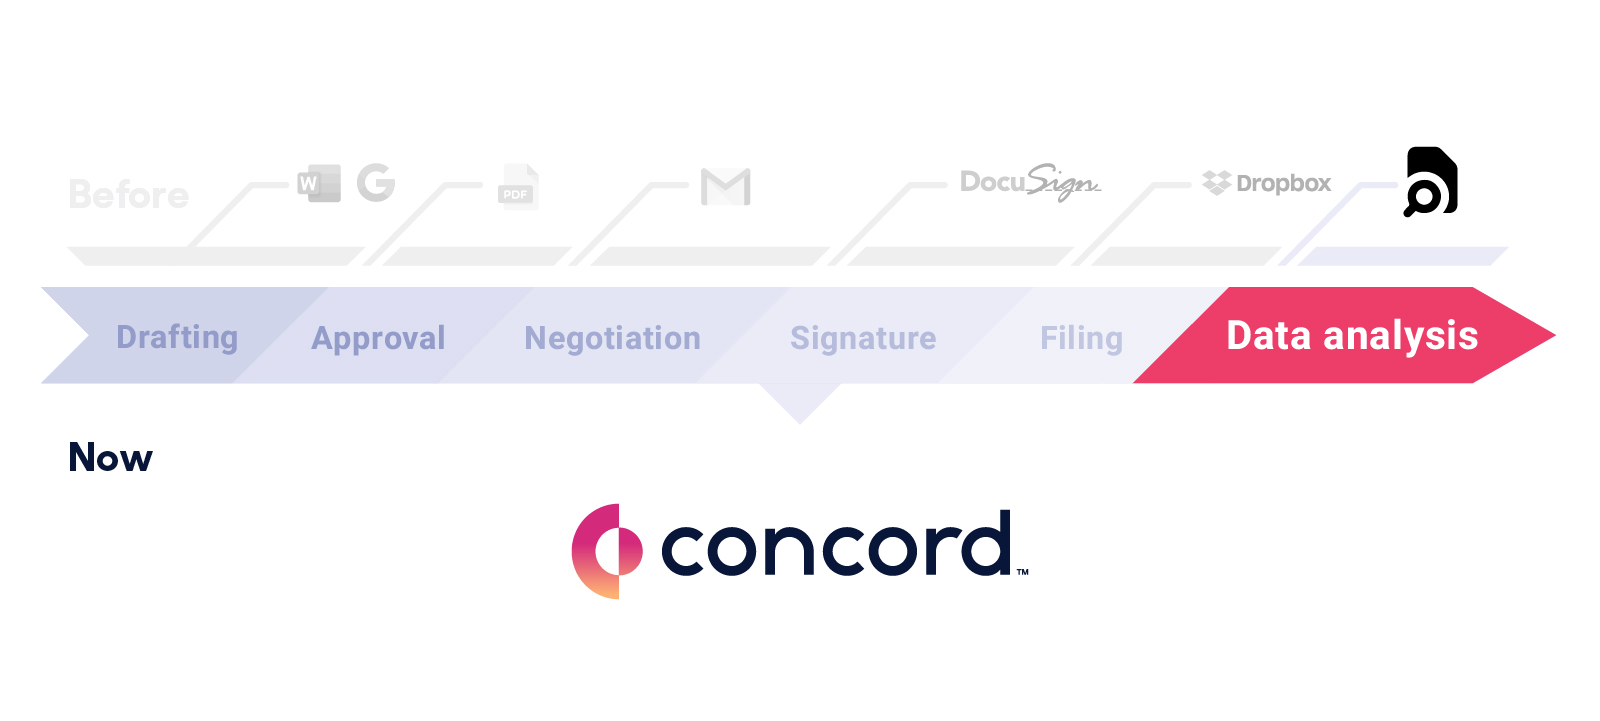 The final stage of the contract lifecycle is tracking contract renewals and analyzing document data.